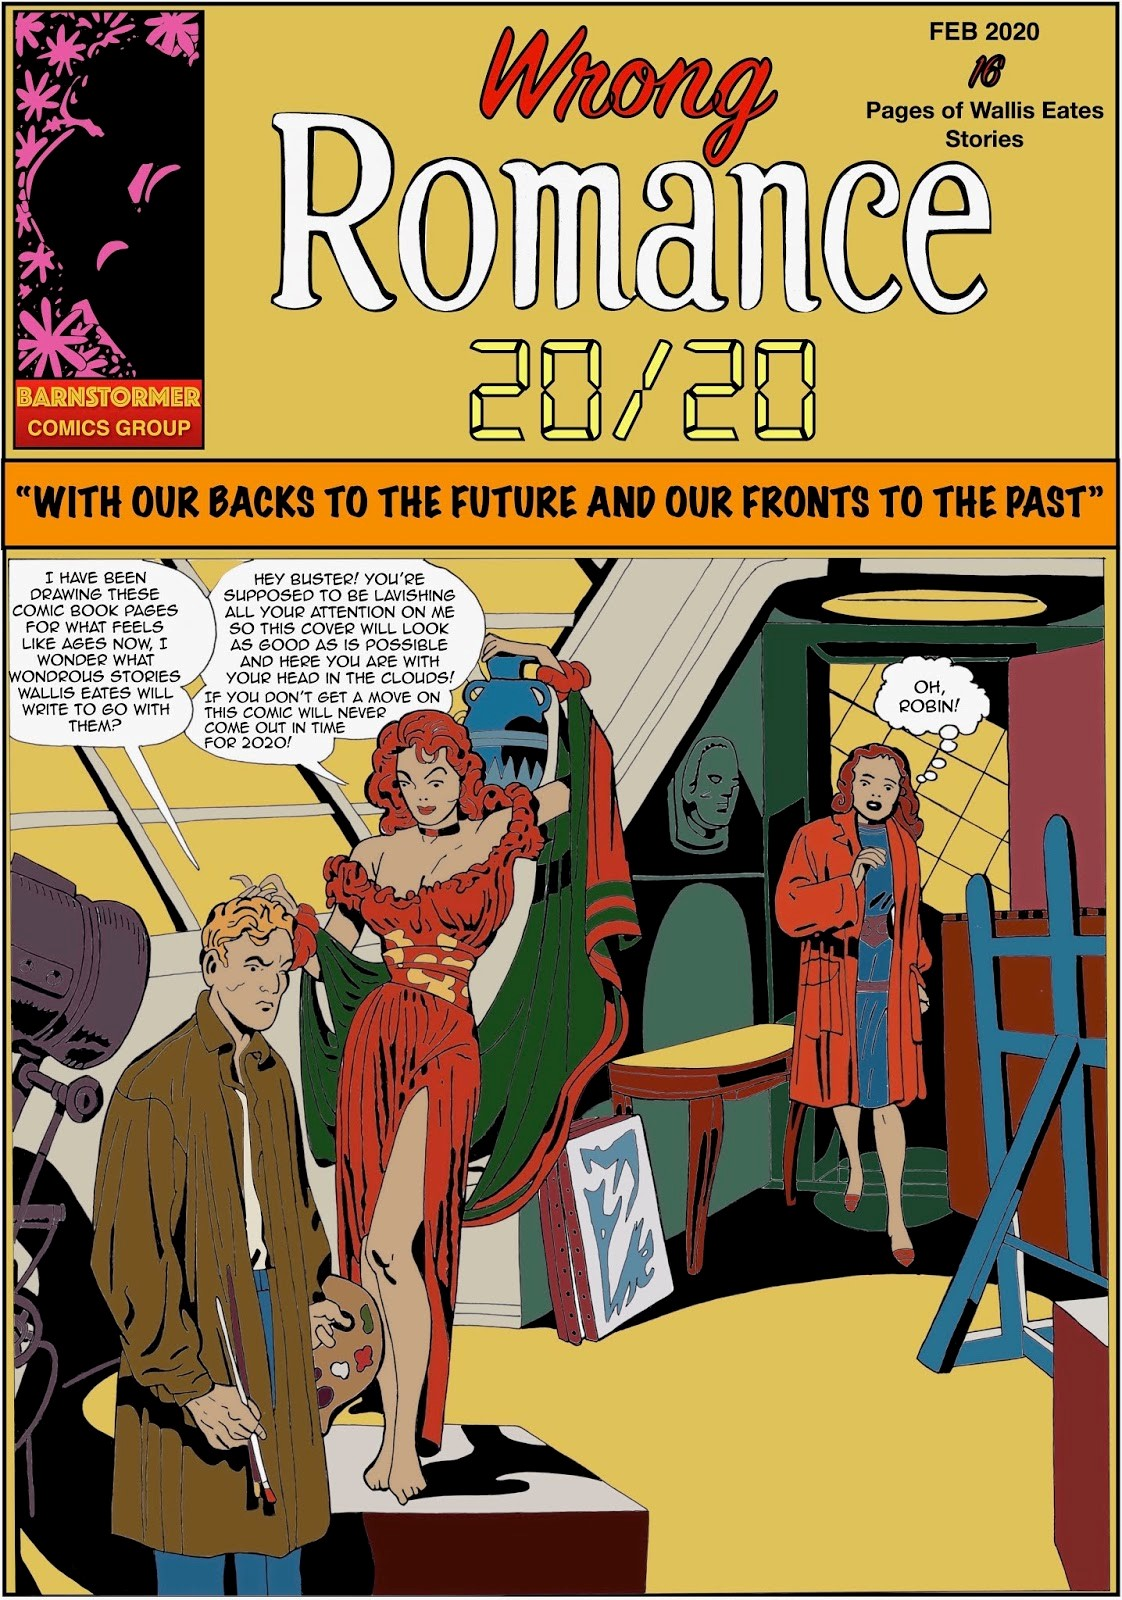 WHAT ROMANCE 20-20 (with Wallis Eates)